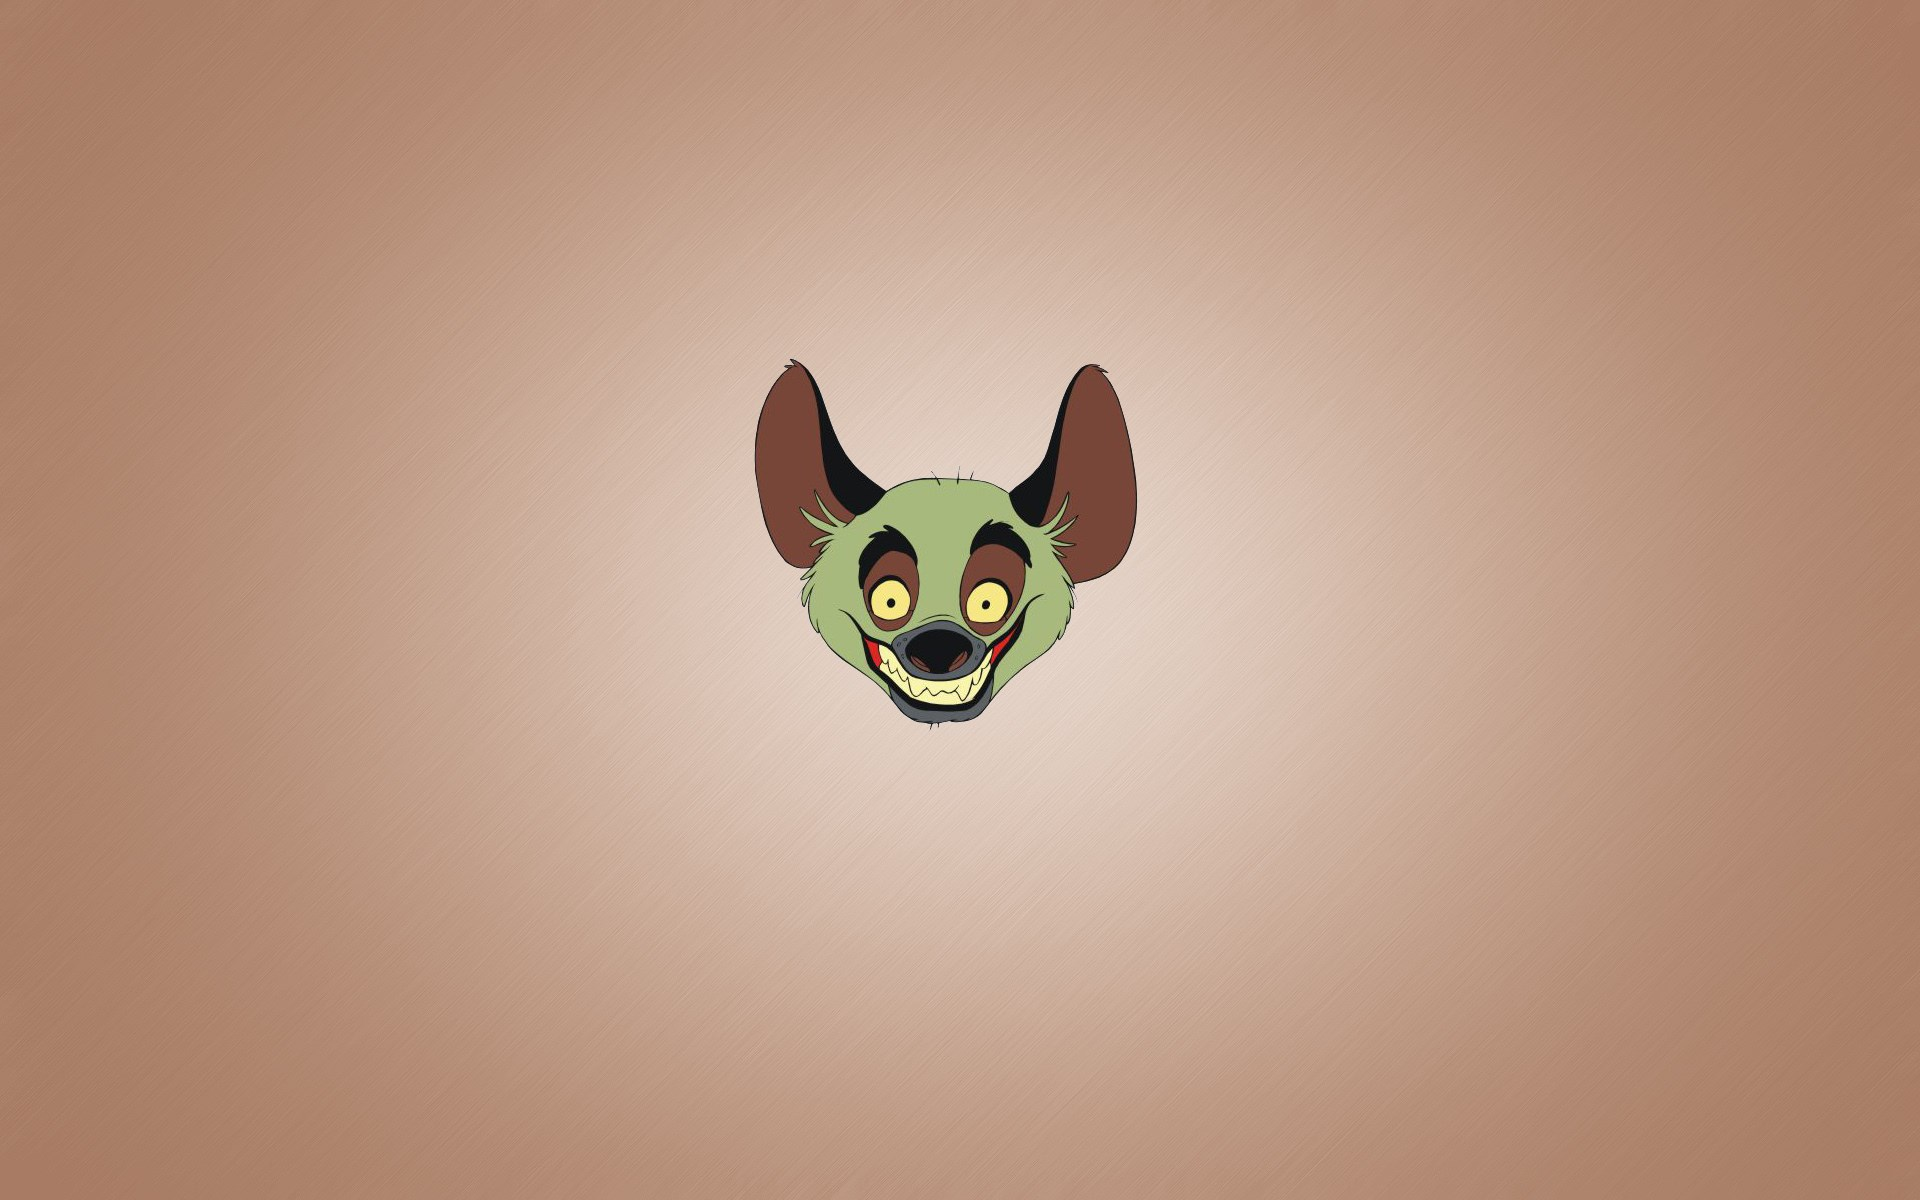 Hyena Smile Animal Minimalism Cartoon